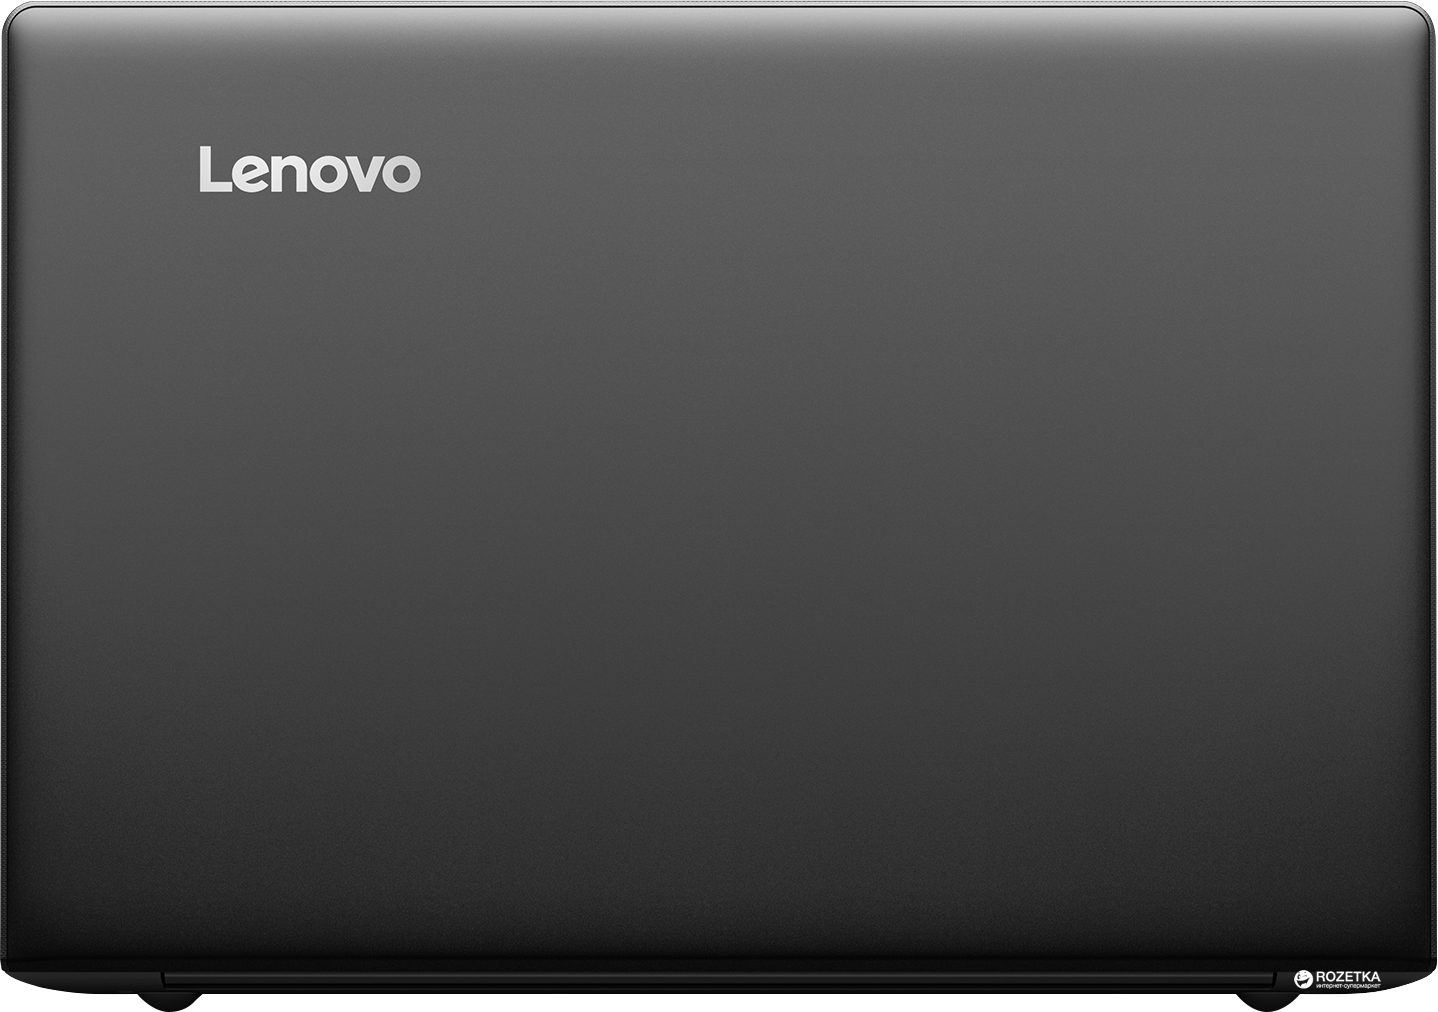 Ноутбук Lenovo 310-15IAP 80TT005VRK (Intel Pentium N4200 1.1 GHz/4096Mb/500Gb/Intel HD Graphics/Wi-Fi/Cam/15.6/1920x1080/Windows 10 64-bit)